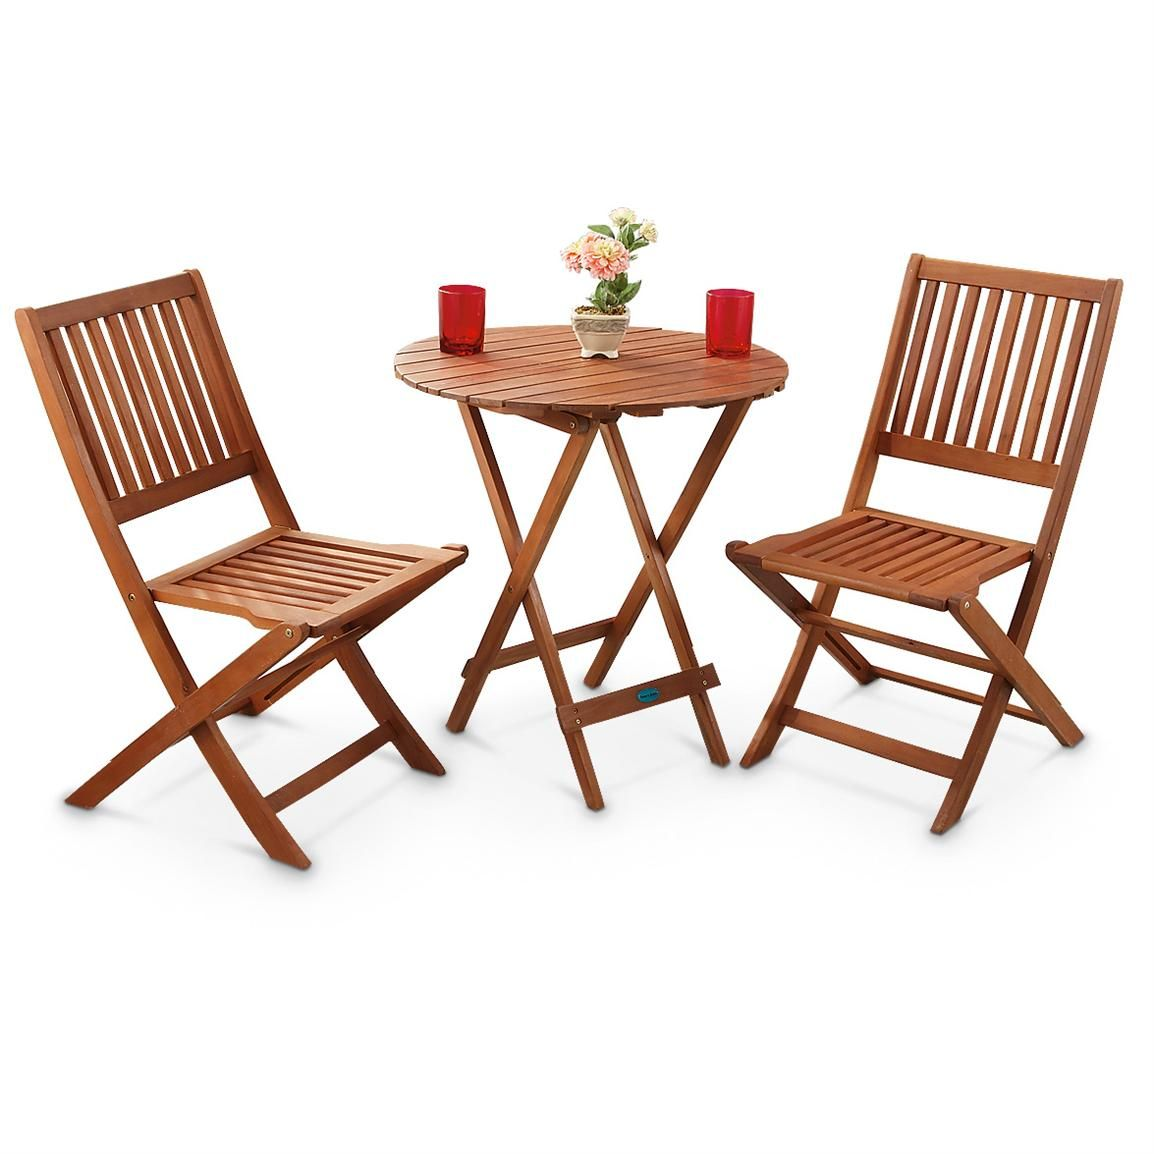 best in folding w built umbrella outdoor chairs patio base and piece set tan dining products choice table